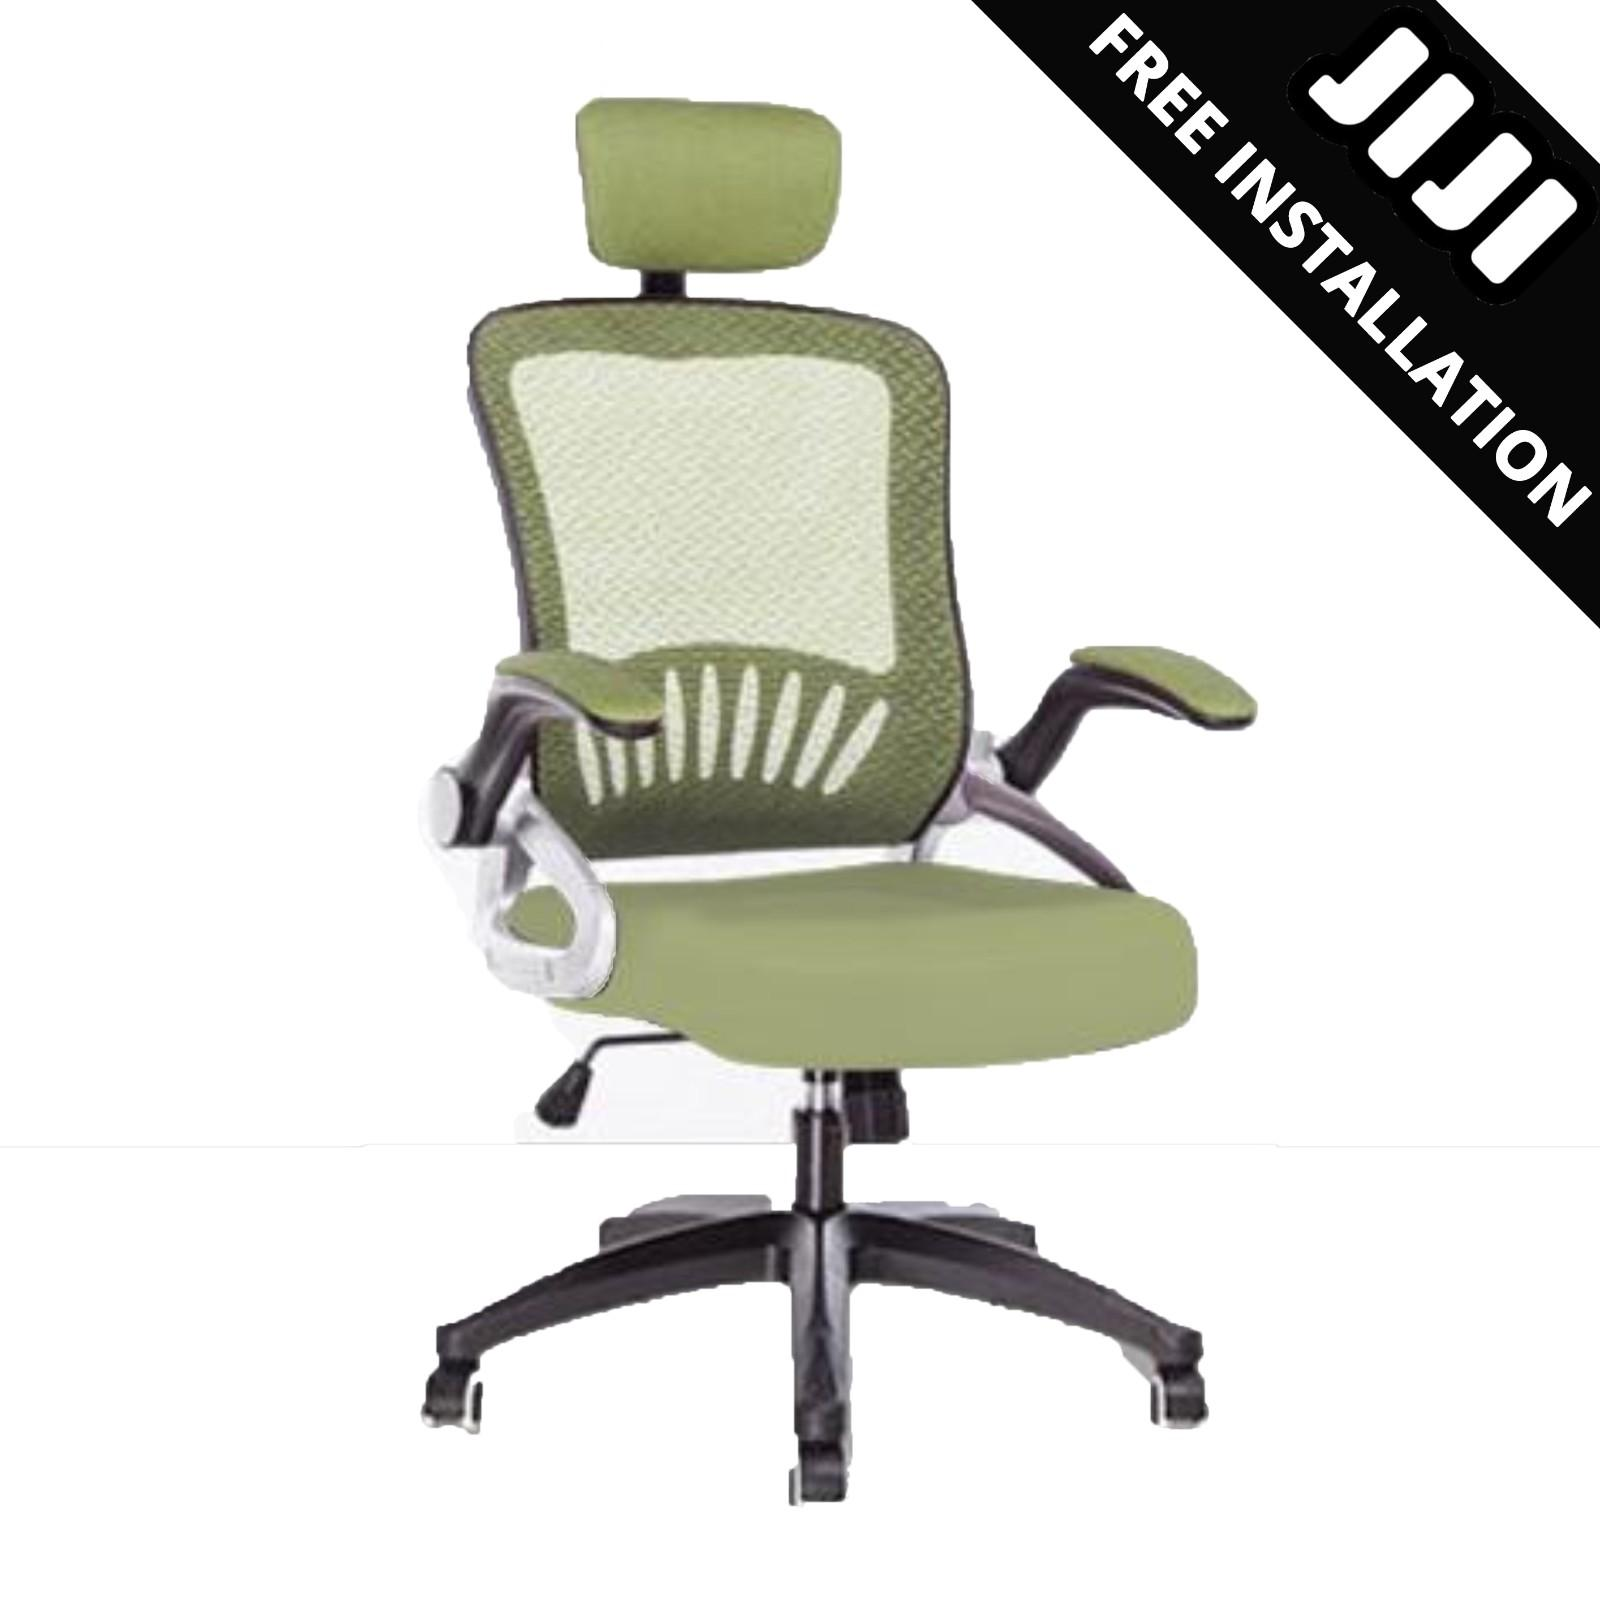 JIJI Office chair Executive Chair Ver 3 Movable ArmRest (Free Installation) - (Home Office Chair) Office chairs /Study chair/Gaming chair/Ergonomic/ Free 12 Months Warranty (SG)